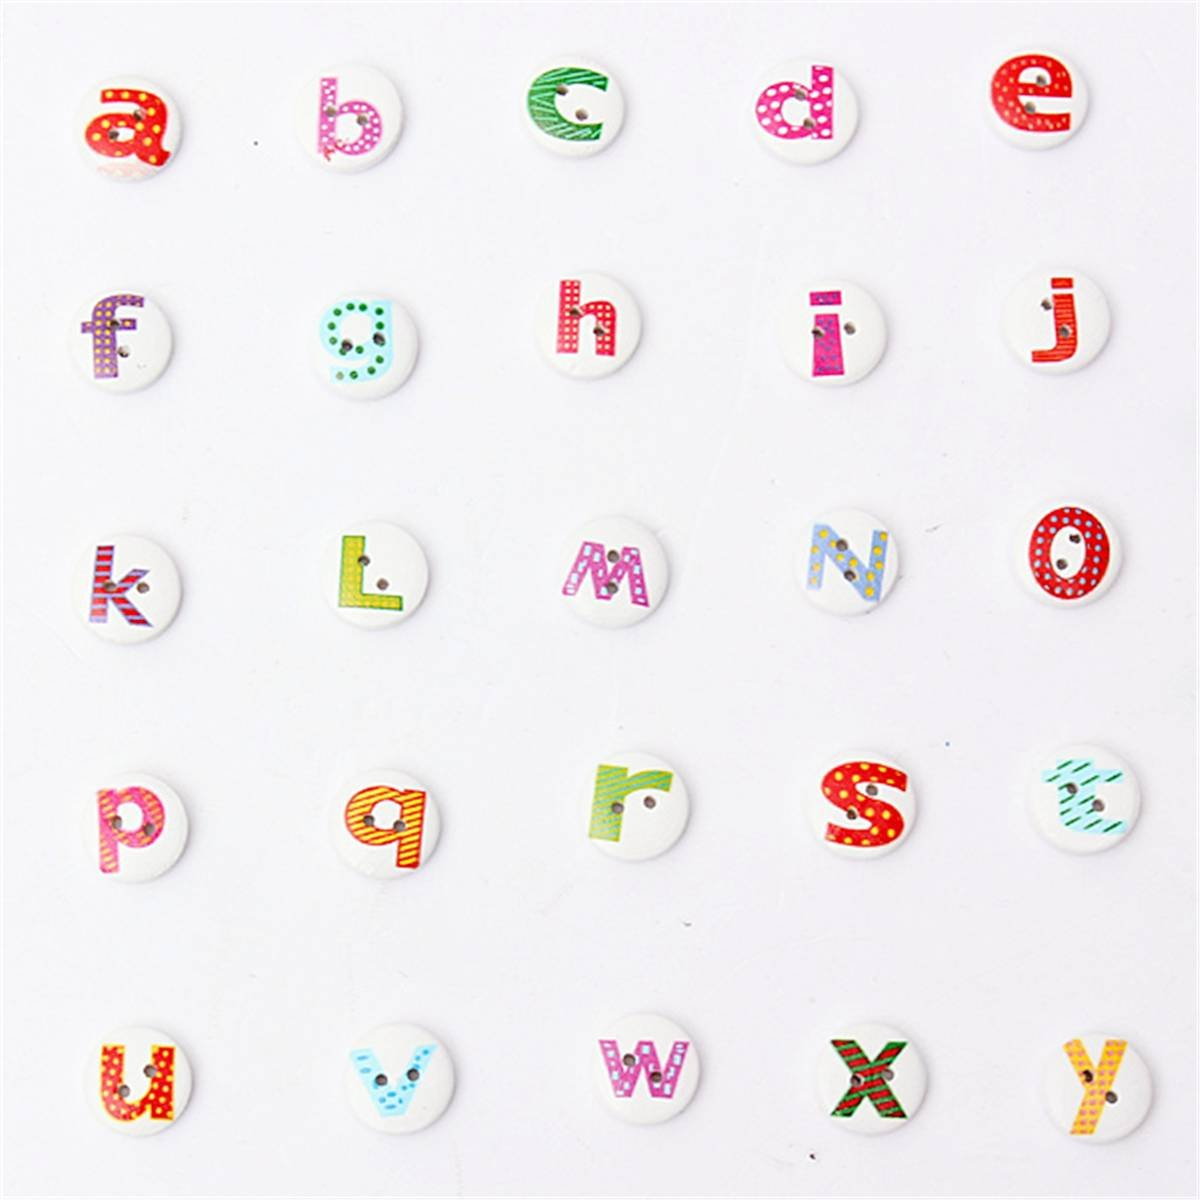 Practical 100Pcs Mixed Painted Letter Alphabet Wooden Sewing Button Scrapbooking